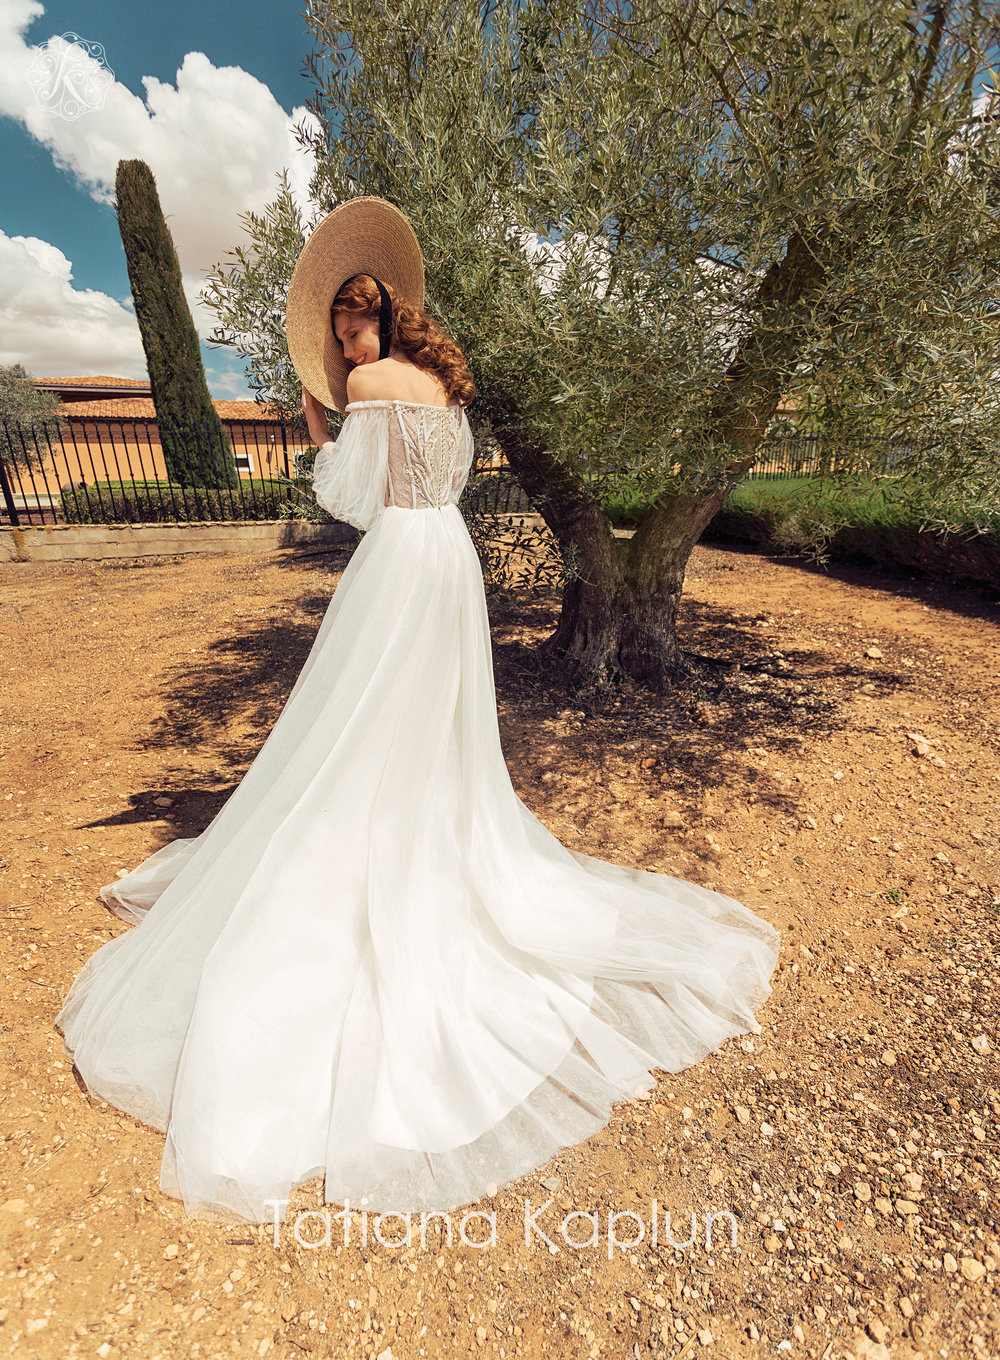 FELISTA wedding dress by Tatiana Kaplun